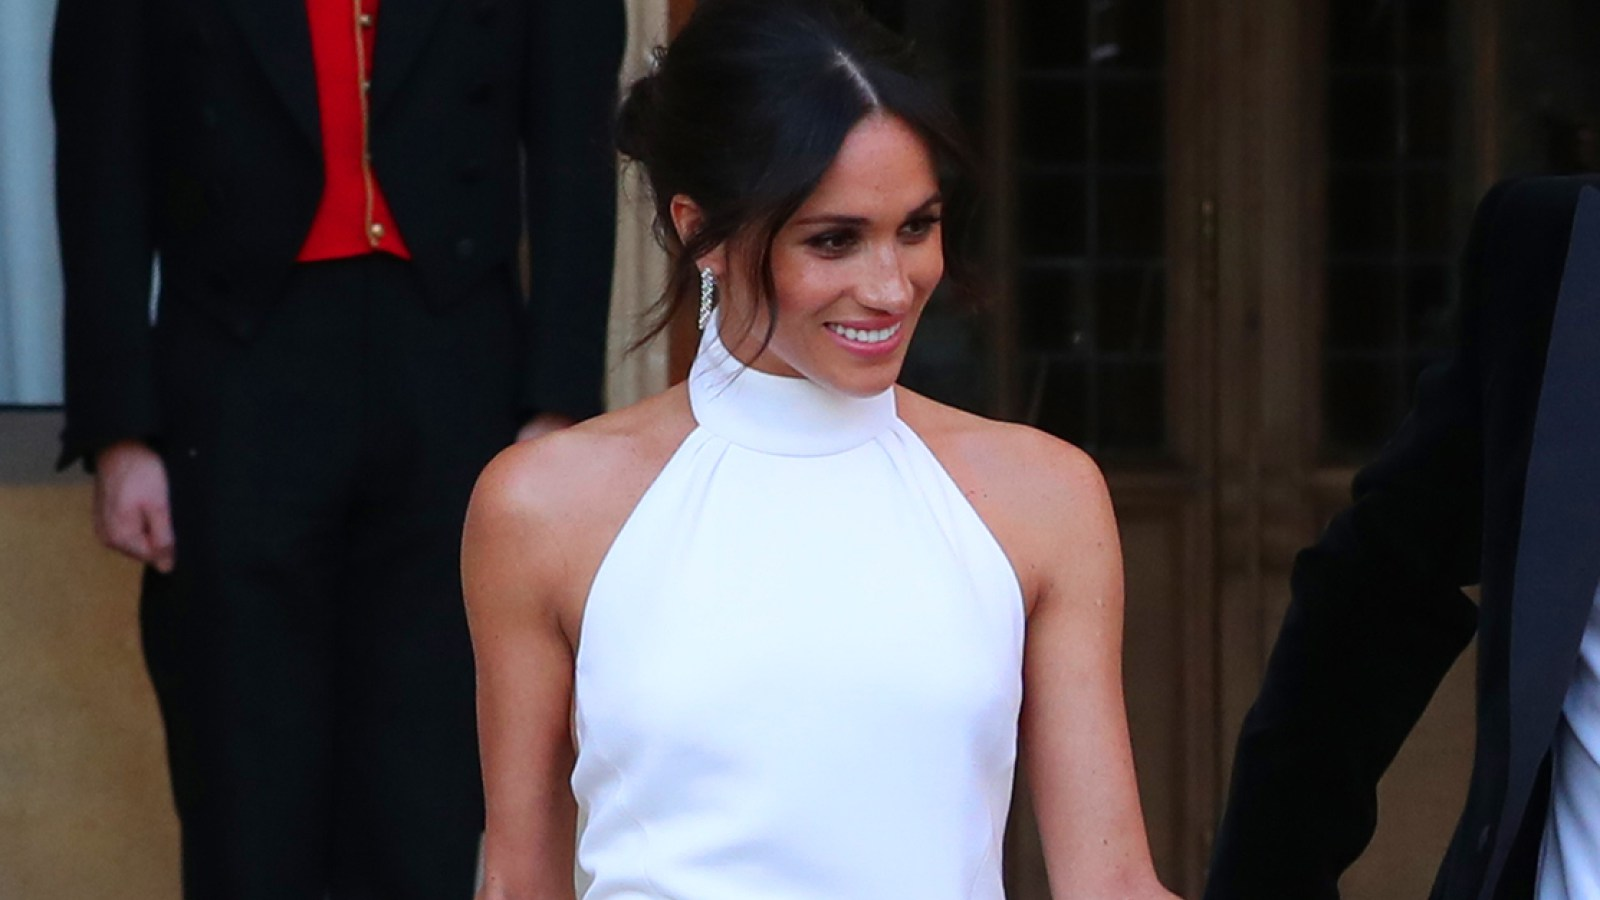 dress2-meghan.jpg